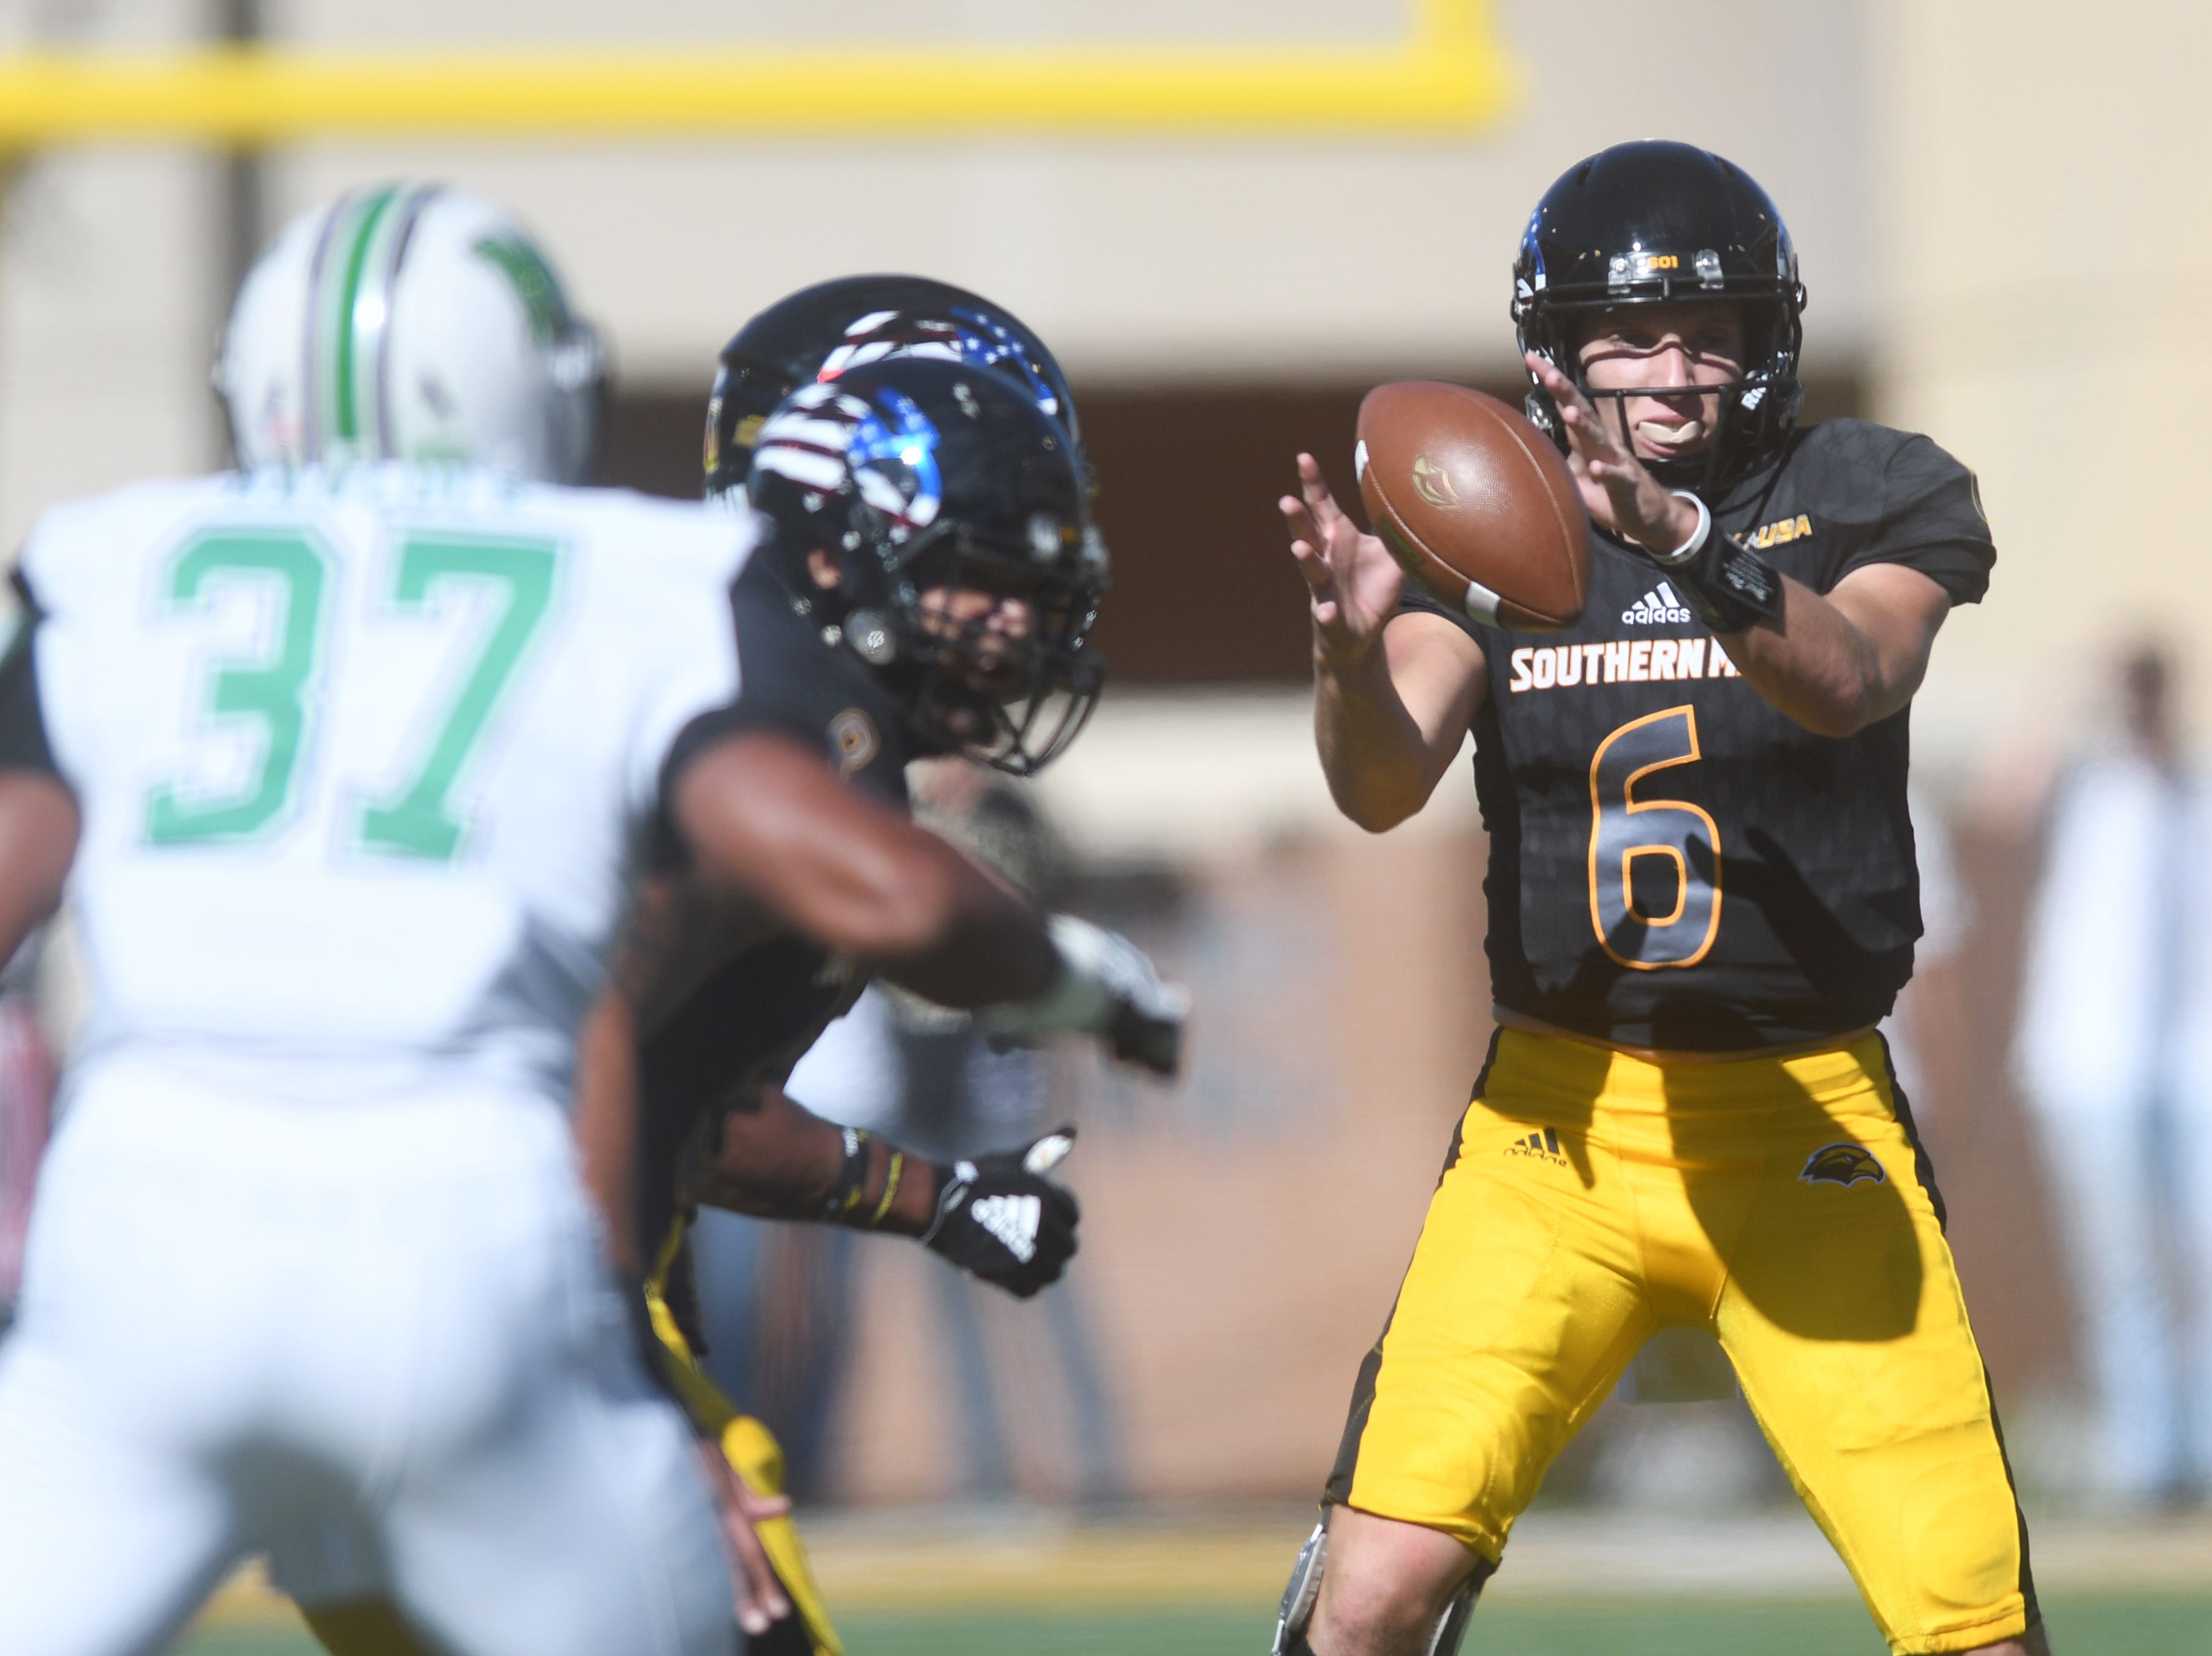 Southern Miss quarterback Tate Whatley receives the ball in a game against Marshall at M.M. Roberts Stadium on Saturday, November 3, 2018.